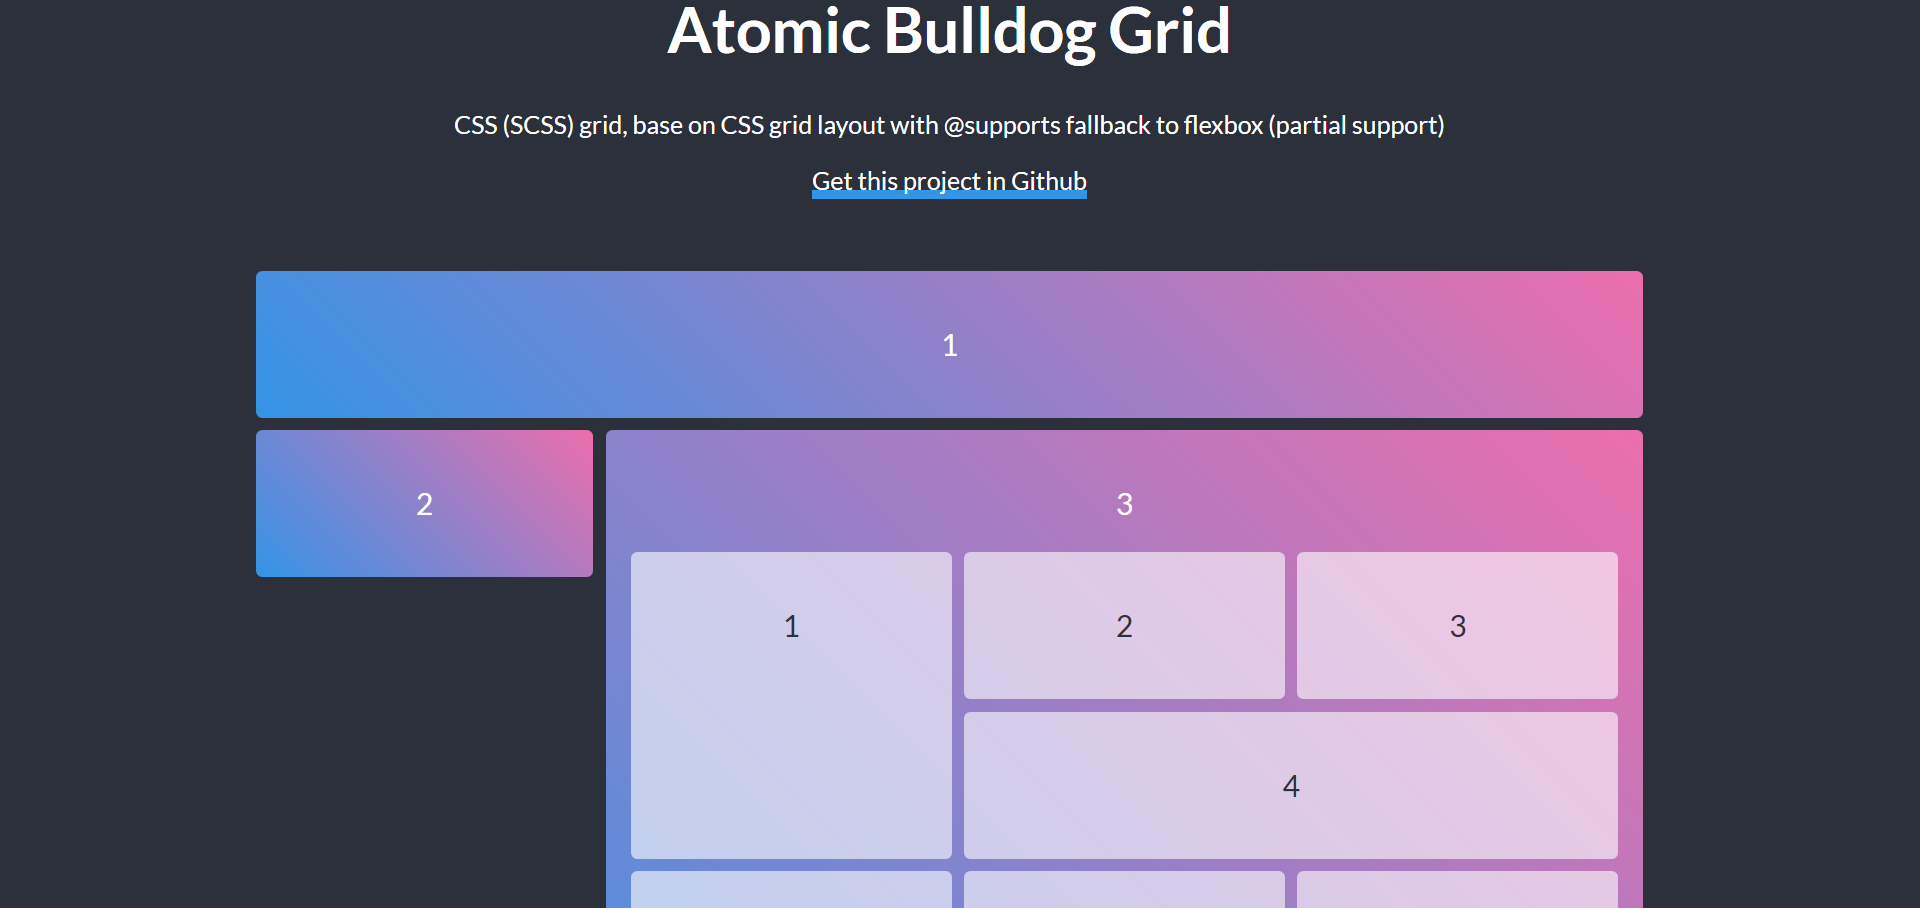 Atomic Bulldog grid